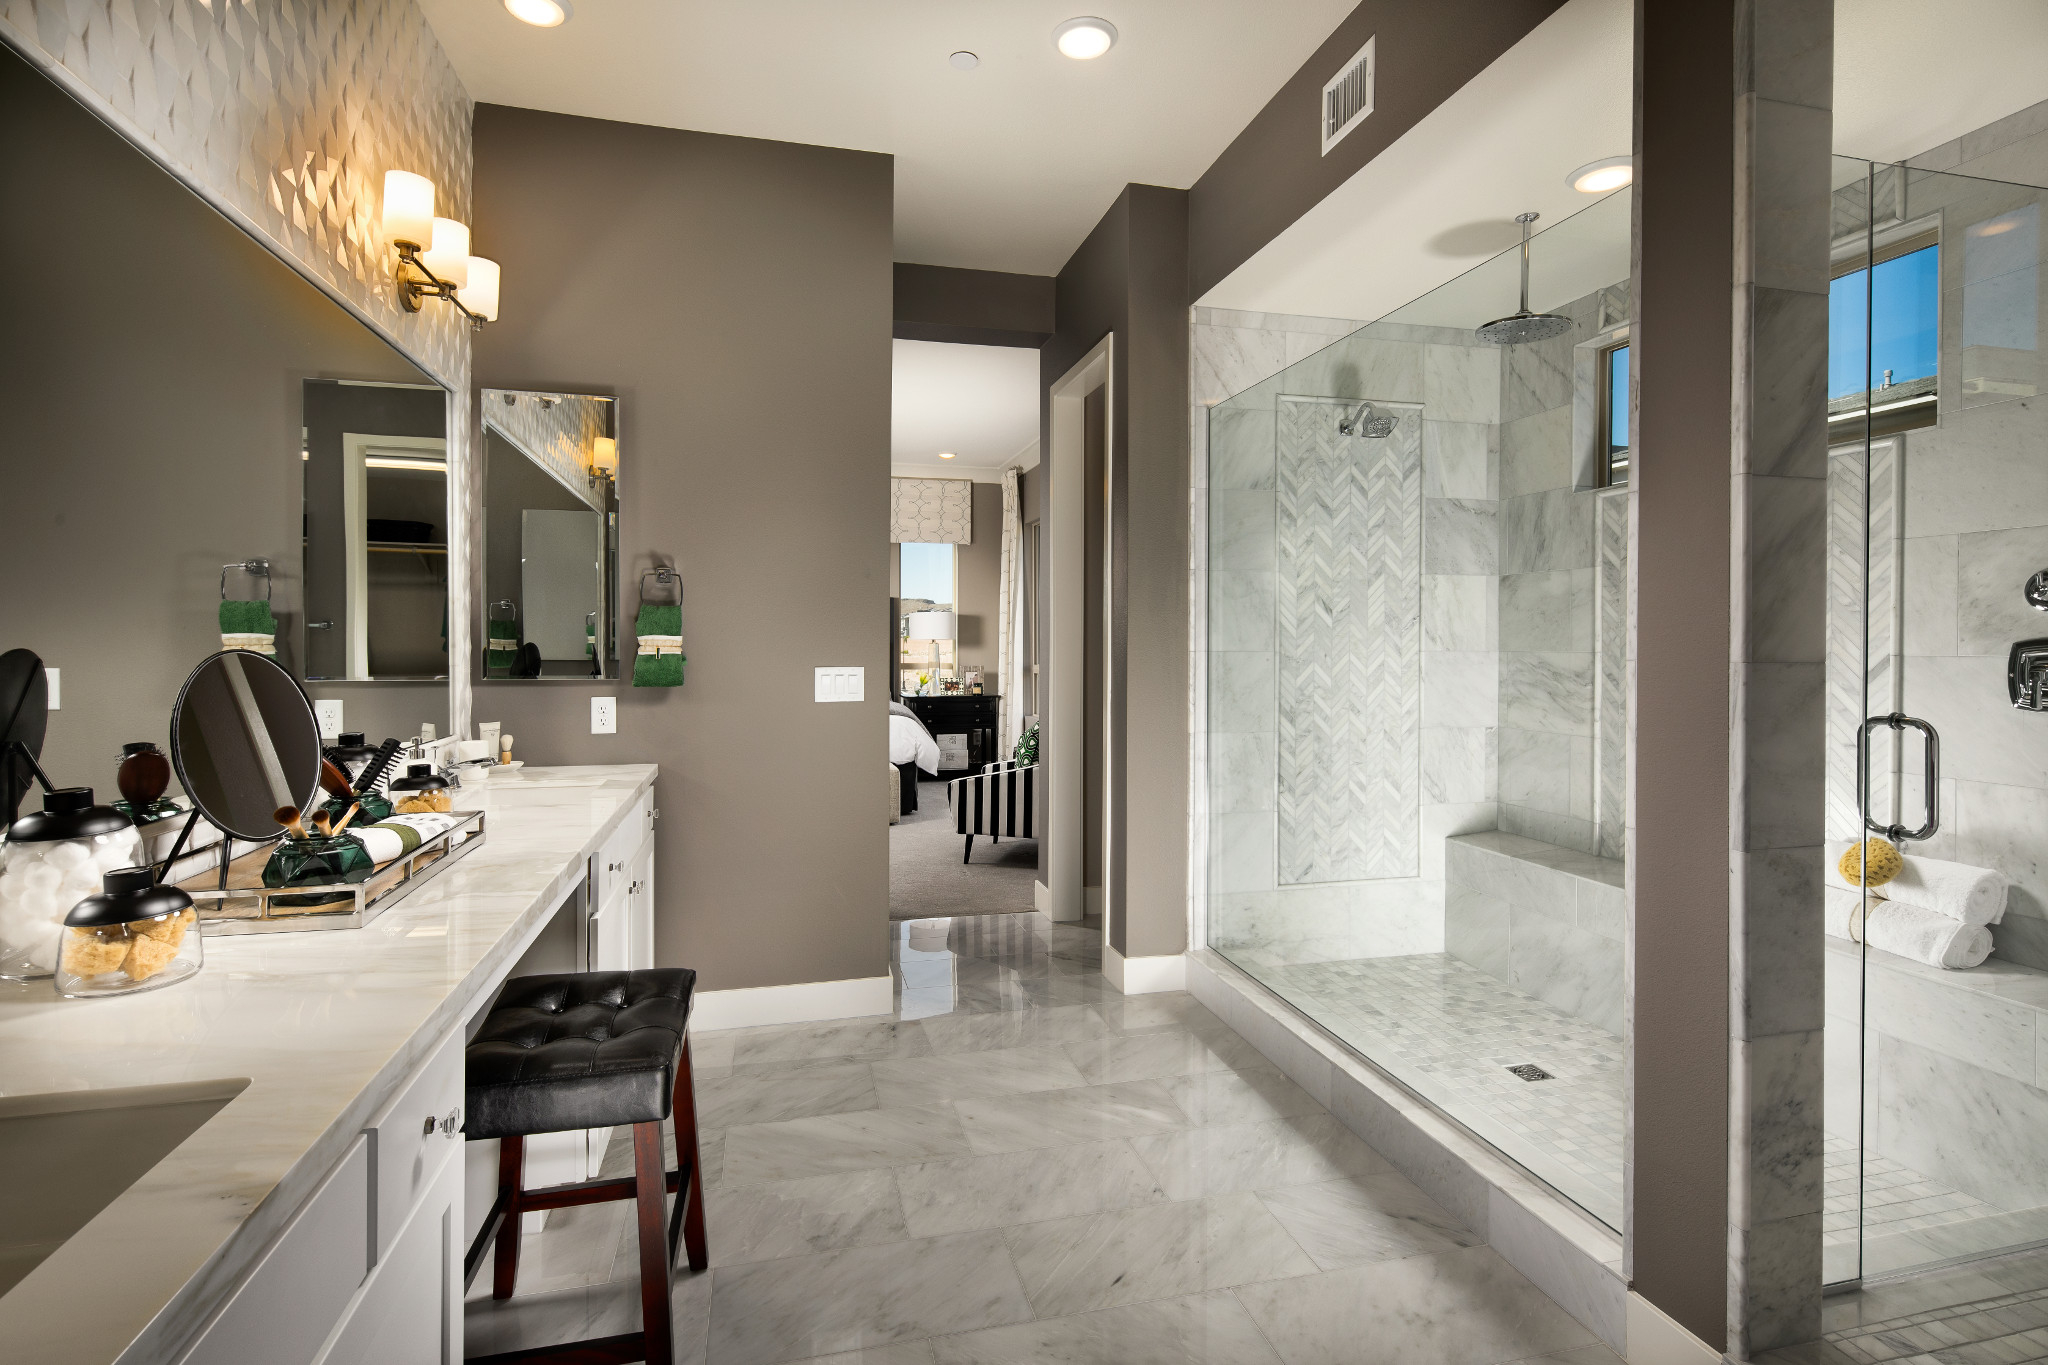 Trilogy in Summerlin Viewpoint Master Bath